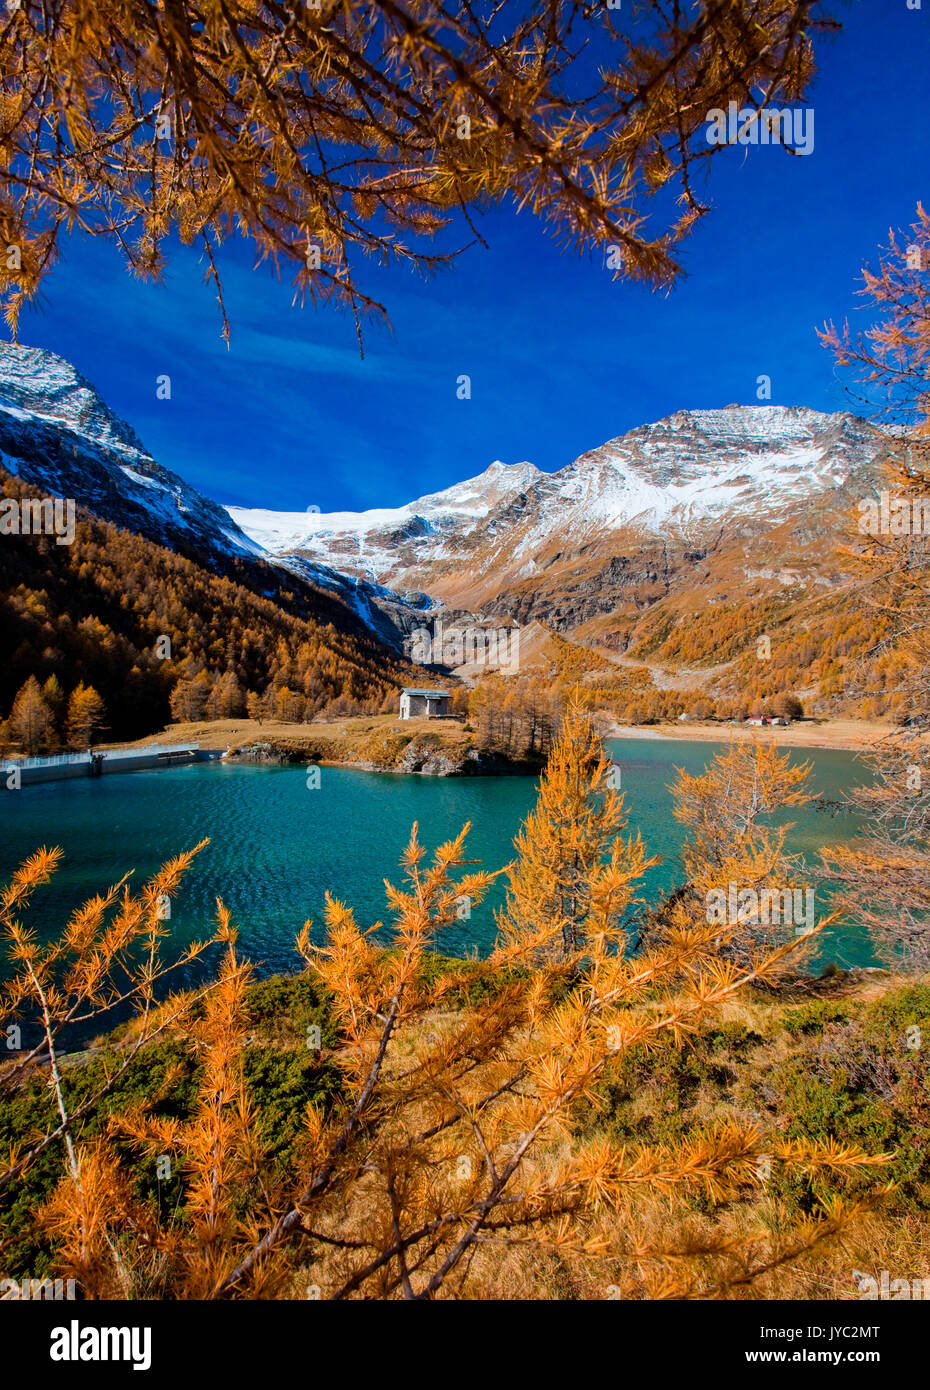 The lake of Alp Grum clashing with the autumn colours of Val Poschiavo and in the background the glacier of Palù Switzerland Europe - Stock Image